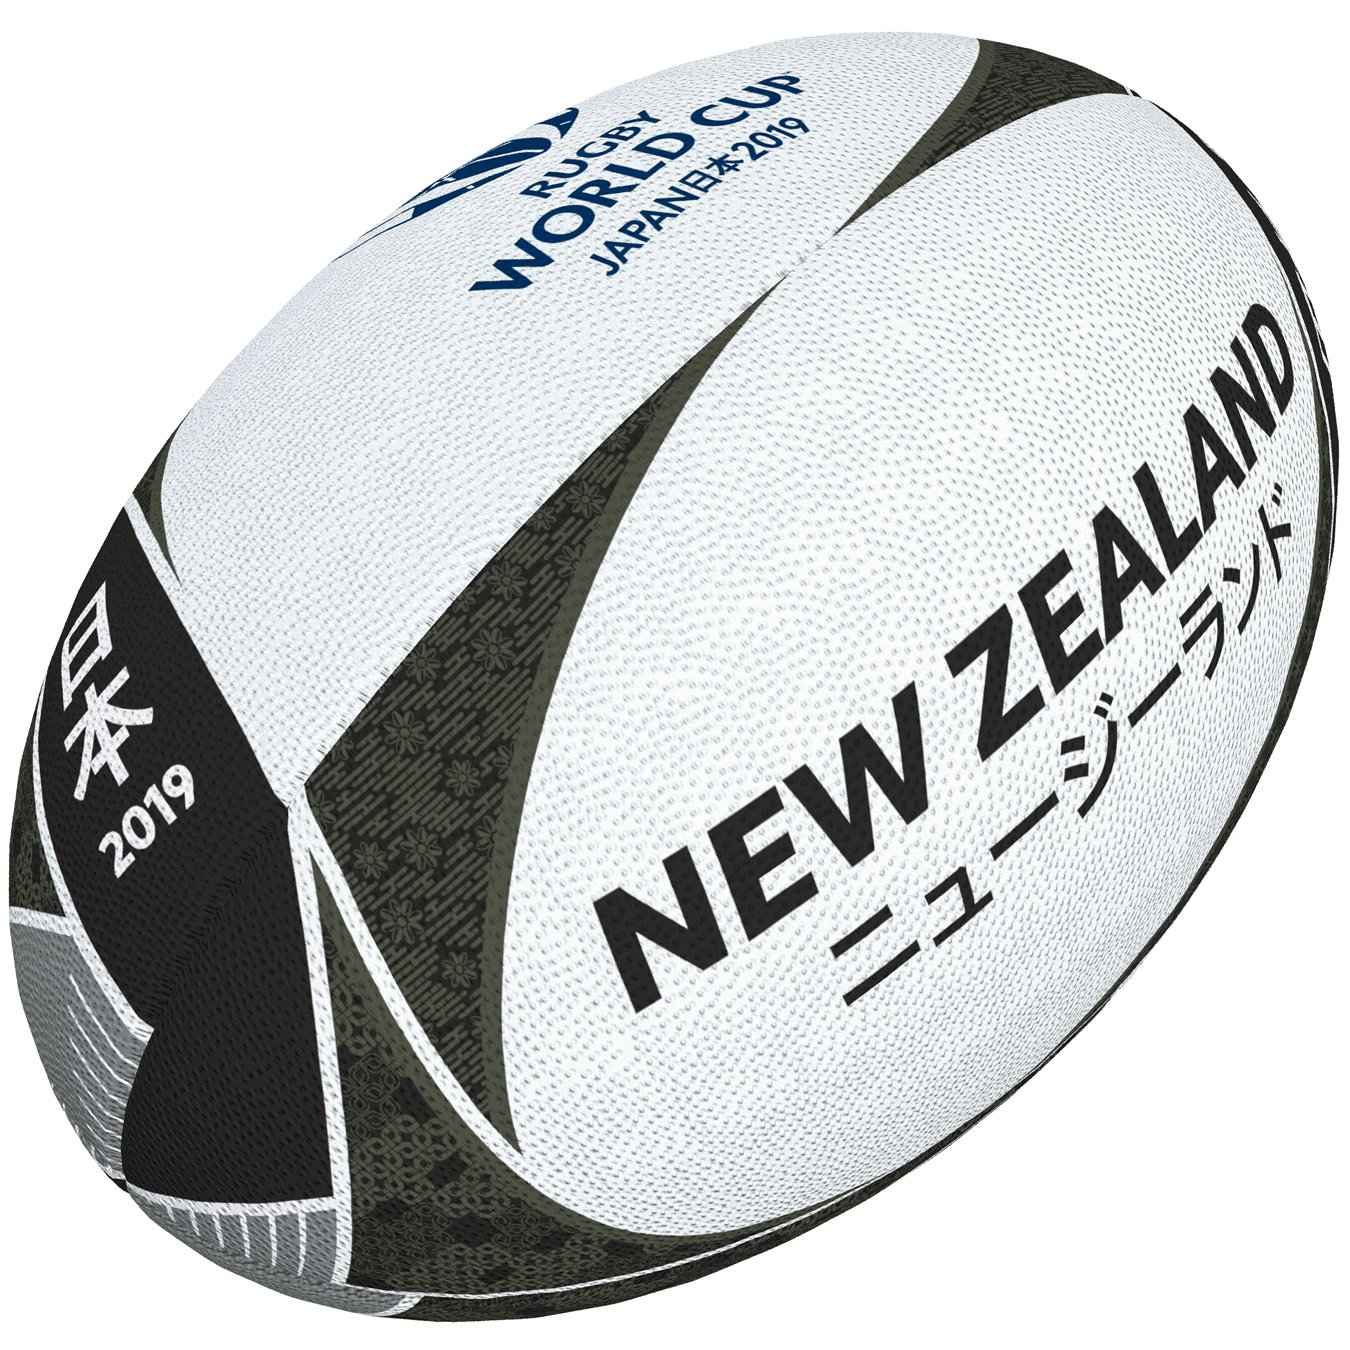 Gilbert Rugby World Cup Japan 2019  New Zealand Supporter Palla Grays